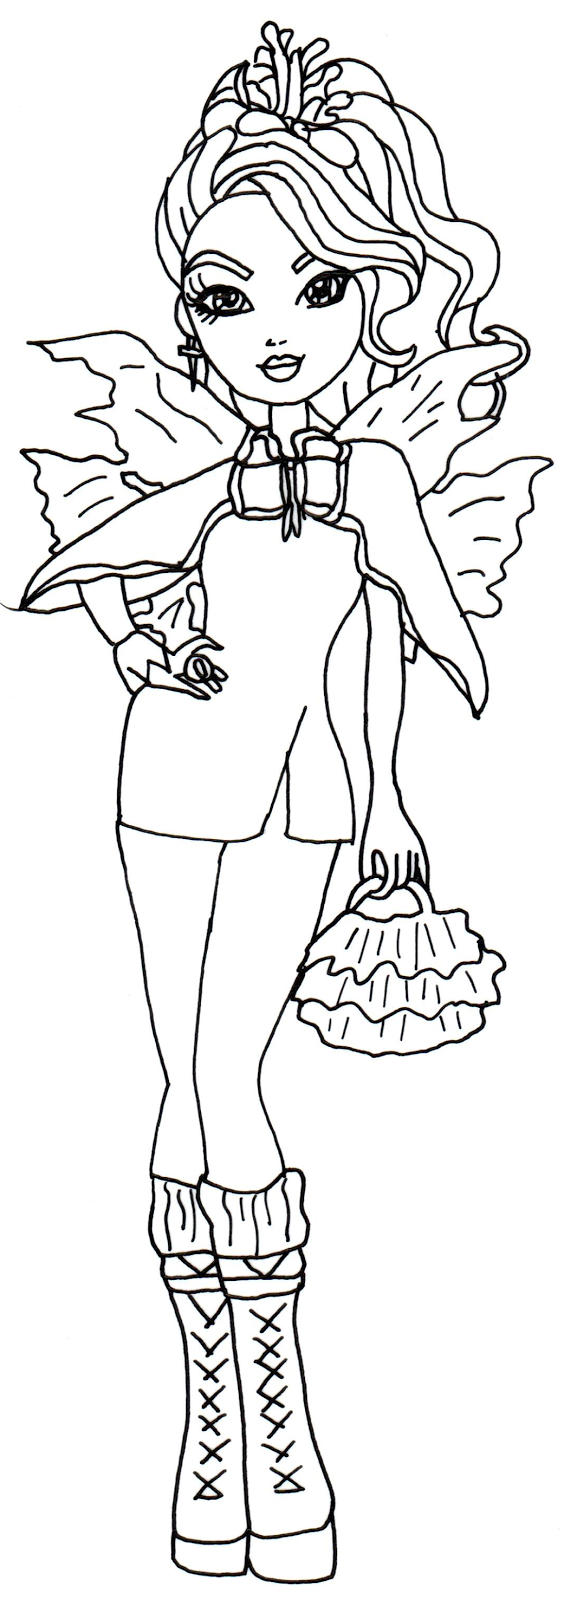 Hd Wallpapers Ever After High Faybelle Thorn Coloring Pages Sweet